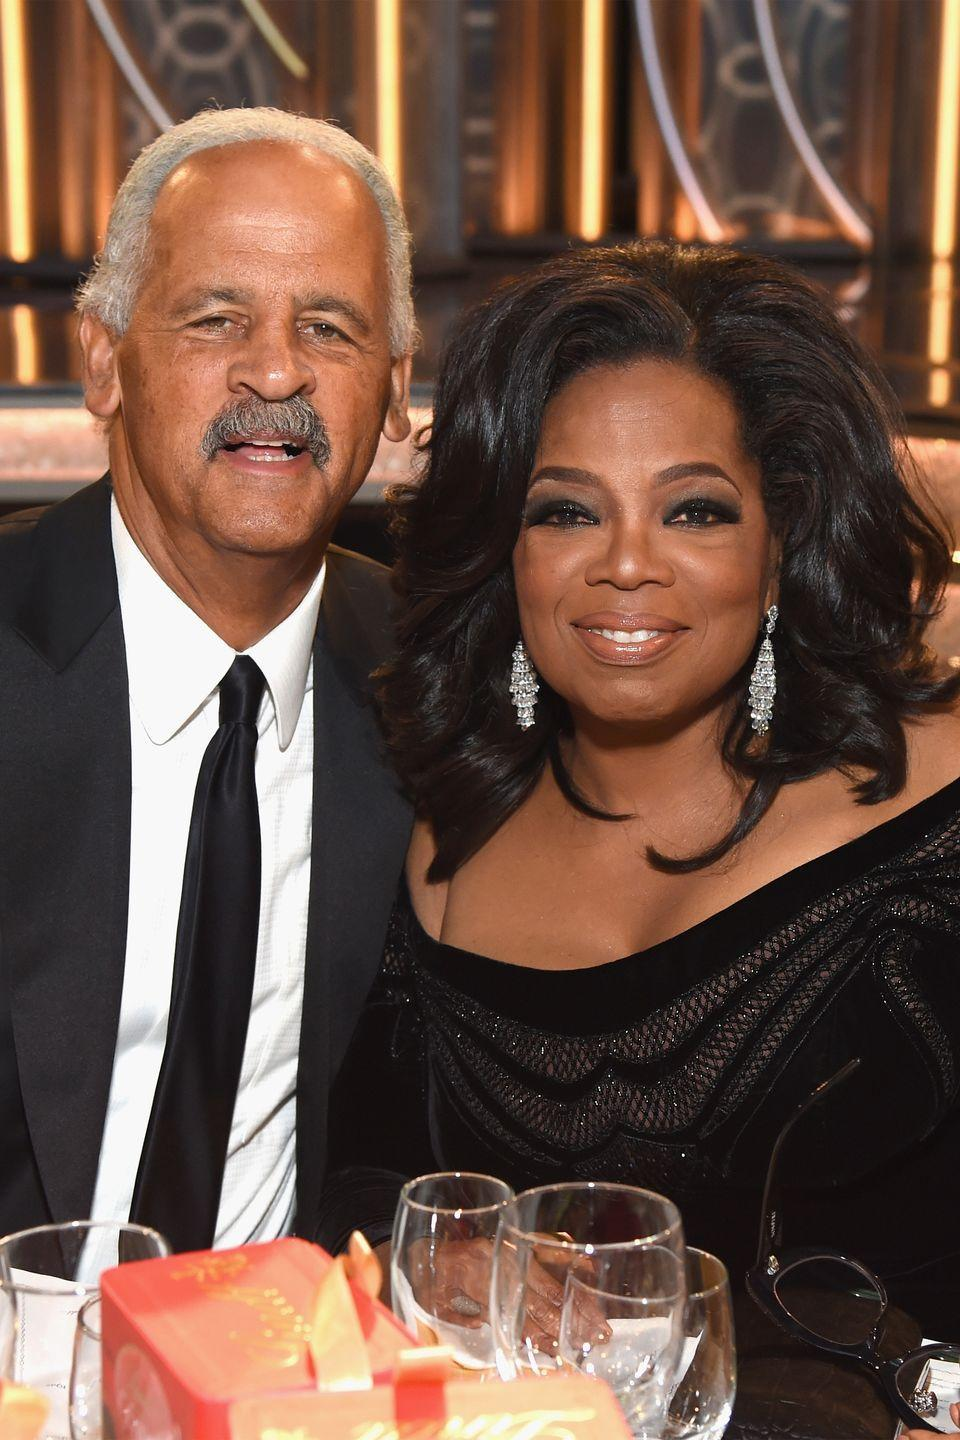 "<p>Oprah Winfrey and her long-time partner Stedman Graham have <a href=""https://www.harpersbazaar.com/celebrity/latest/a14843034/oprah-winfrey-stedman-graham-relationship-timeline/"" rel=""nofollow noopener"" target=""_blank"" data-ylk=""slk:been together"" class=""link rapid-noclick-resp"">been together</a> since her namesake television show debuted in 1986. Nearly 33 years later, the two are still together and more in love than ever. Although they <a href=""https://people.com/archive/cover-story-her-man-stedman-vol-38-no-21/"" rel=""nofollow noopener"" target=""_blank"" data-ylk=""slk:were engaged"" class=""link rapid-noclick-resp"">were engaged</a> in 1992, the two never officially married. However, heir long-term partnership is clearly working for them to last longer than many Hollywood marriages.</p><p>In a 2015 <a href=""https://www.youtube.com/watch?v=4Kkmvy9Pv0k"" rel=""nofollow noopener"" target=""_blank"" data-ylk=""slk:segment"" class=""link rapid-noclick-resp"">segment</a> that aired on the Own network, Stedman shared his feelings about being there for his other half. ""I want her to succeed and be as successful as she possibly can, so I encourage that,"" he said. </p>"